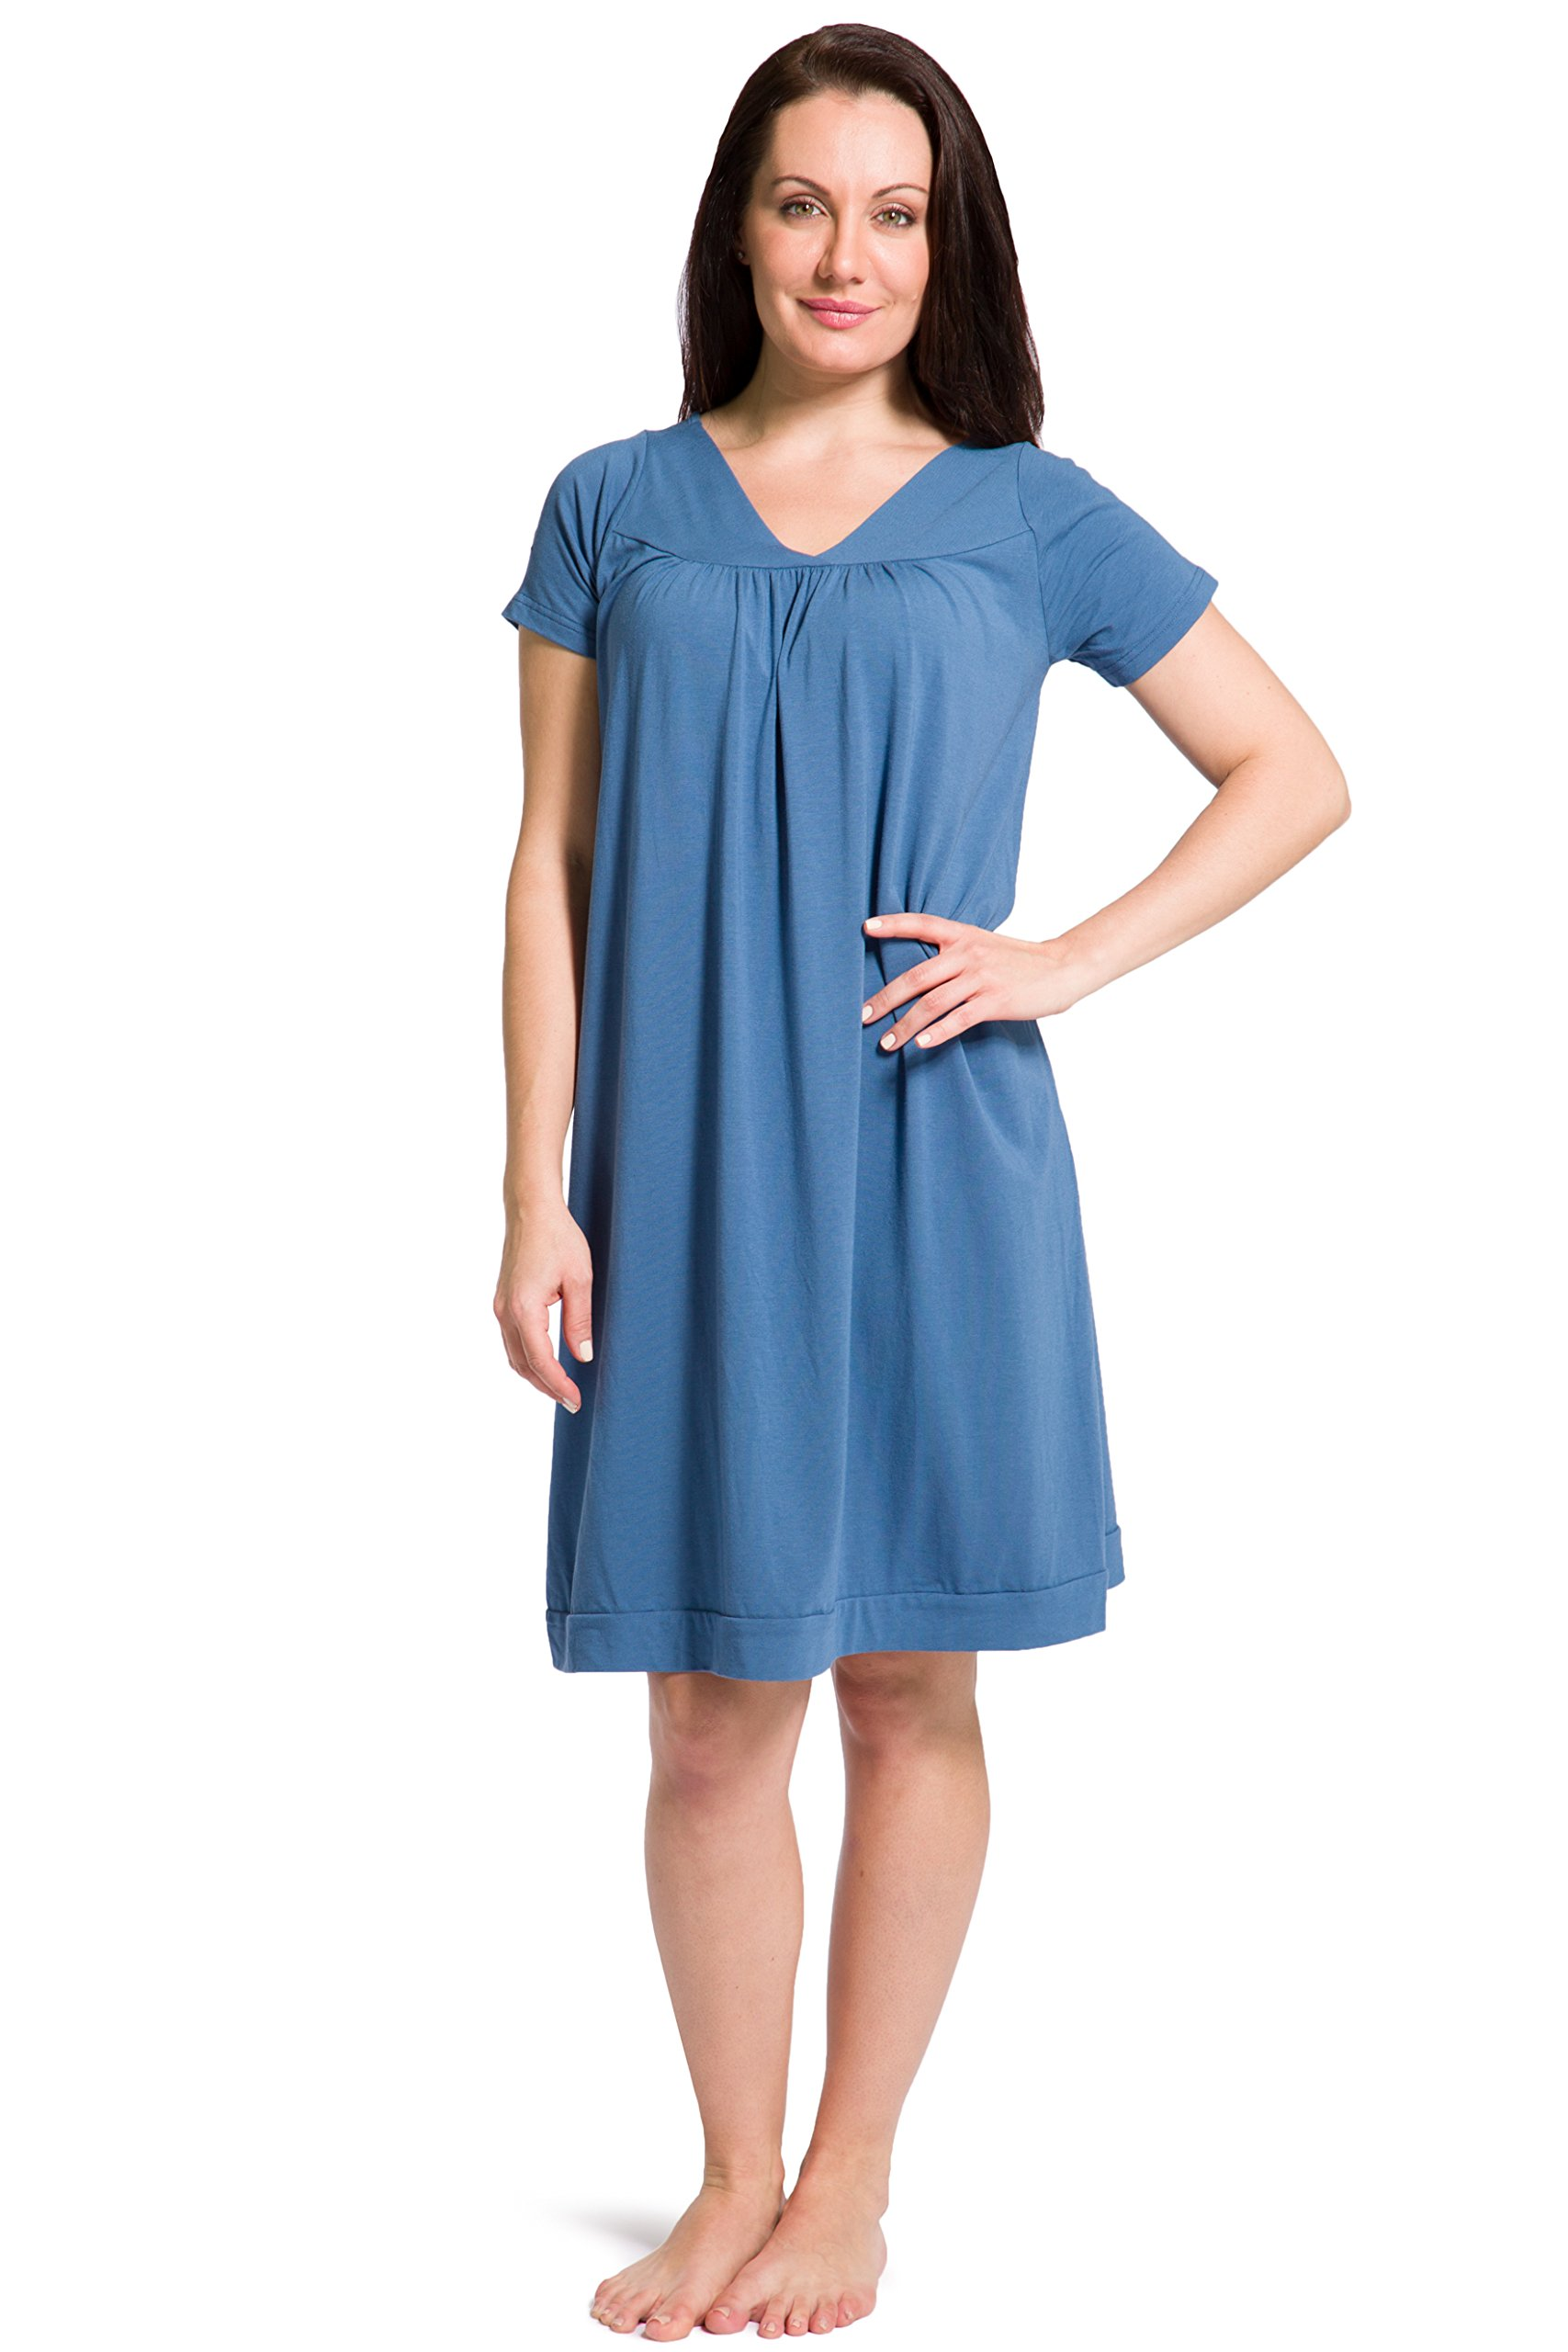 Fishers Finery Women's Tranquil Dreams Short Sleeve Nightgown